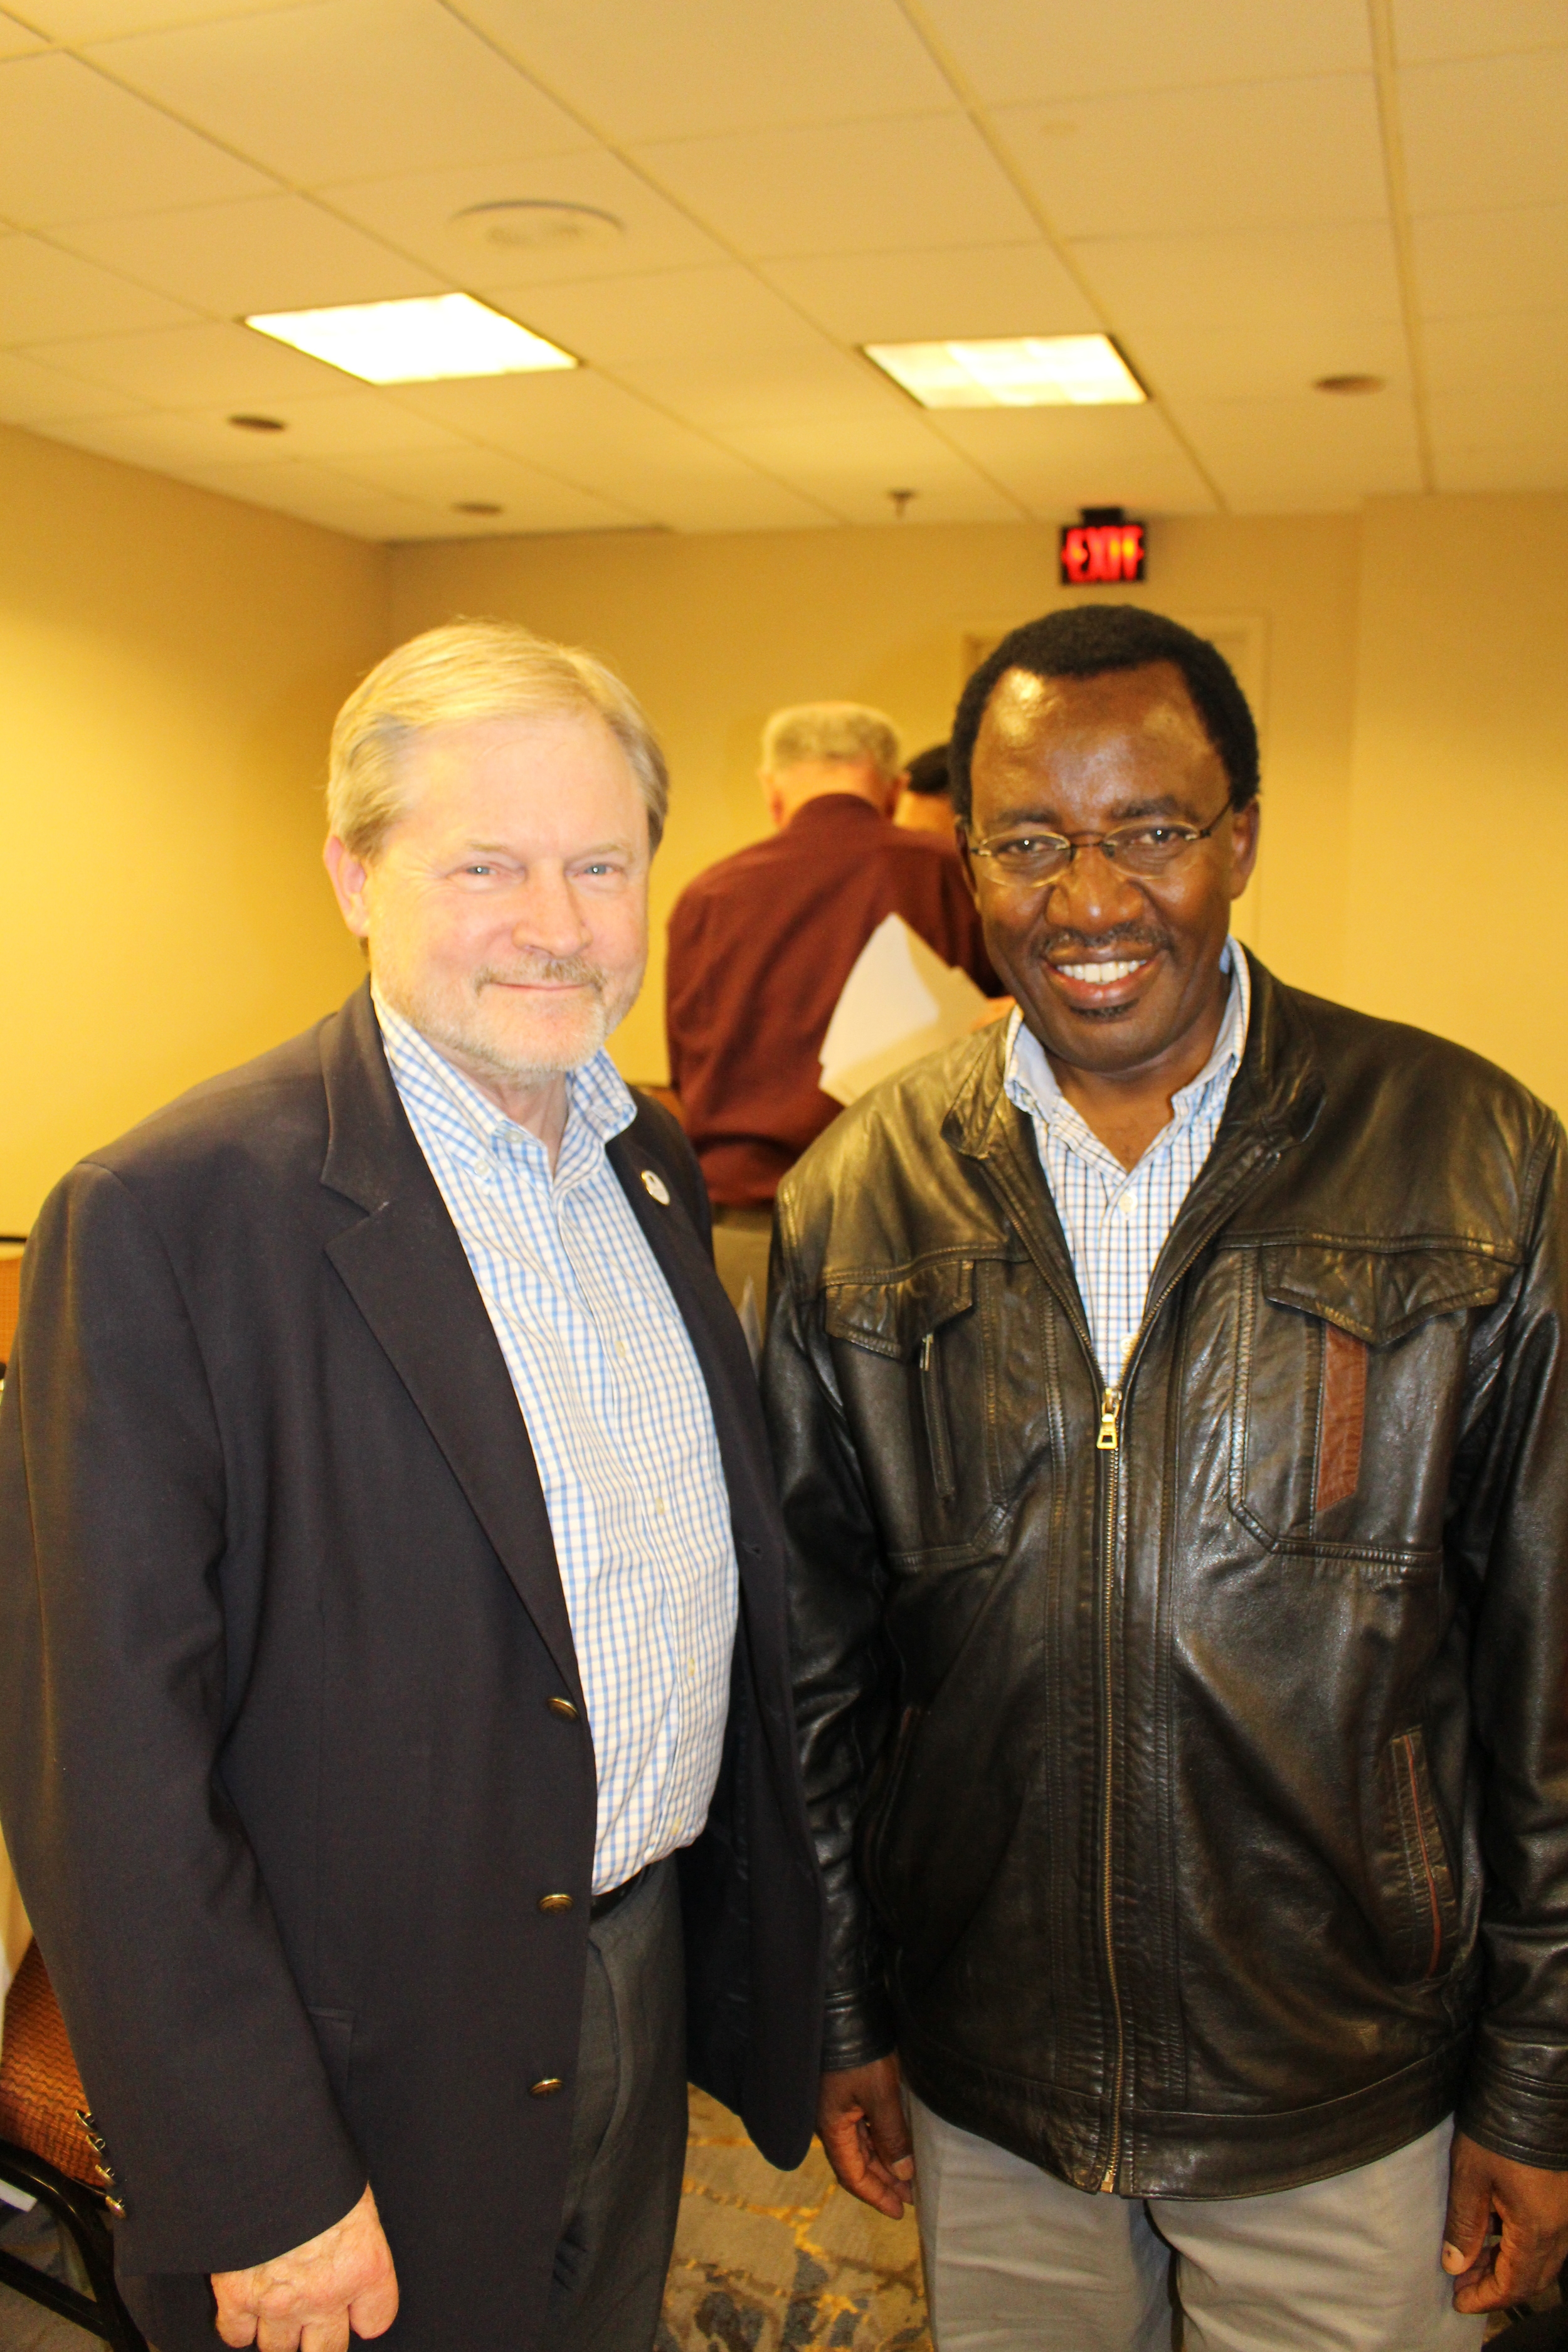 Bethel University's President Dr. James Barnes and Vice Chancellor Dr. Timothy Wachira